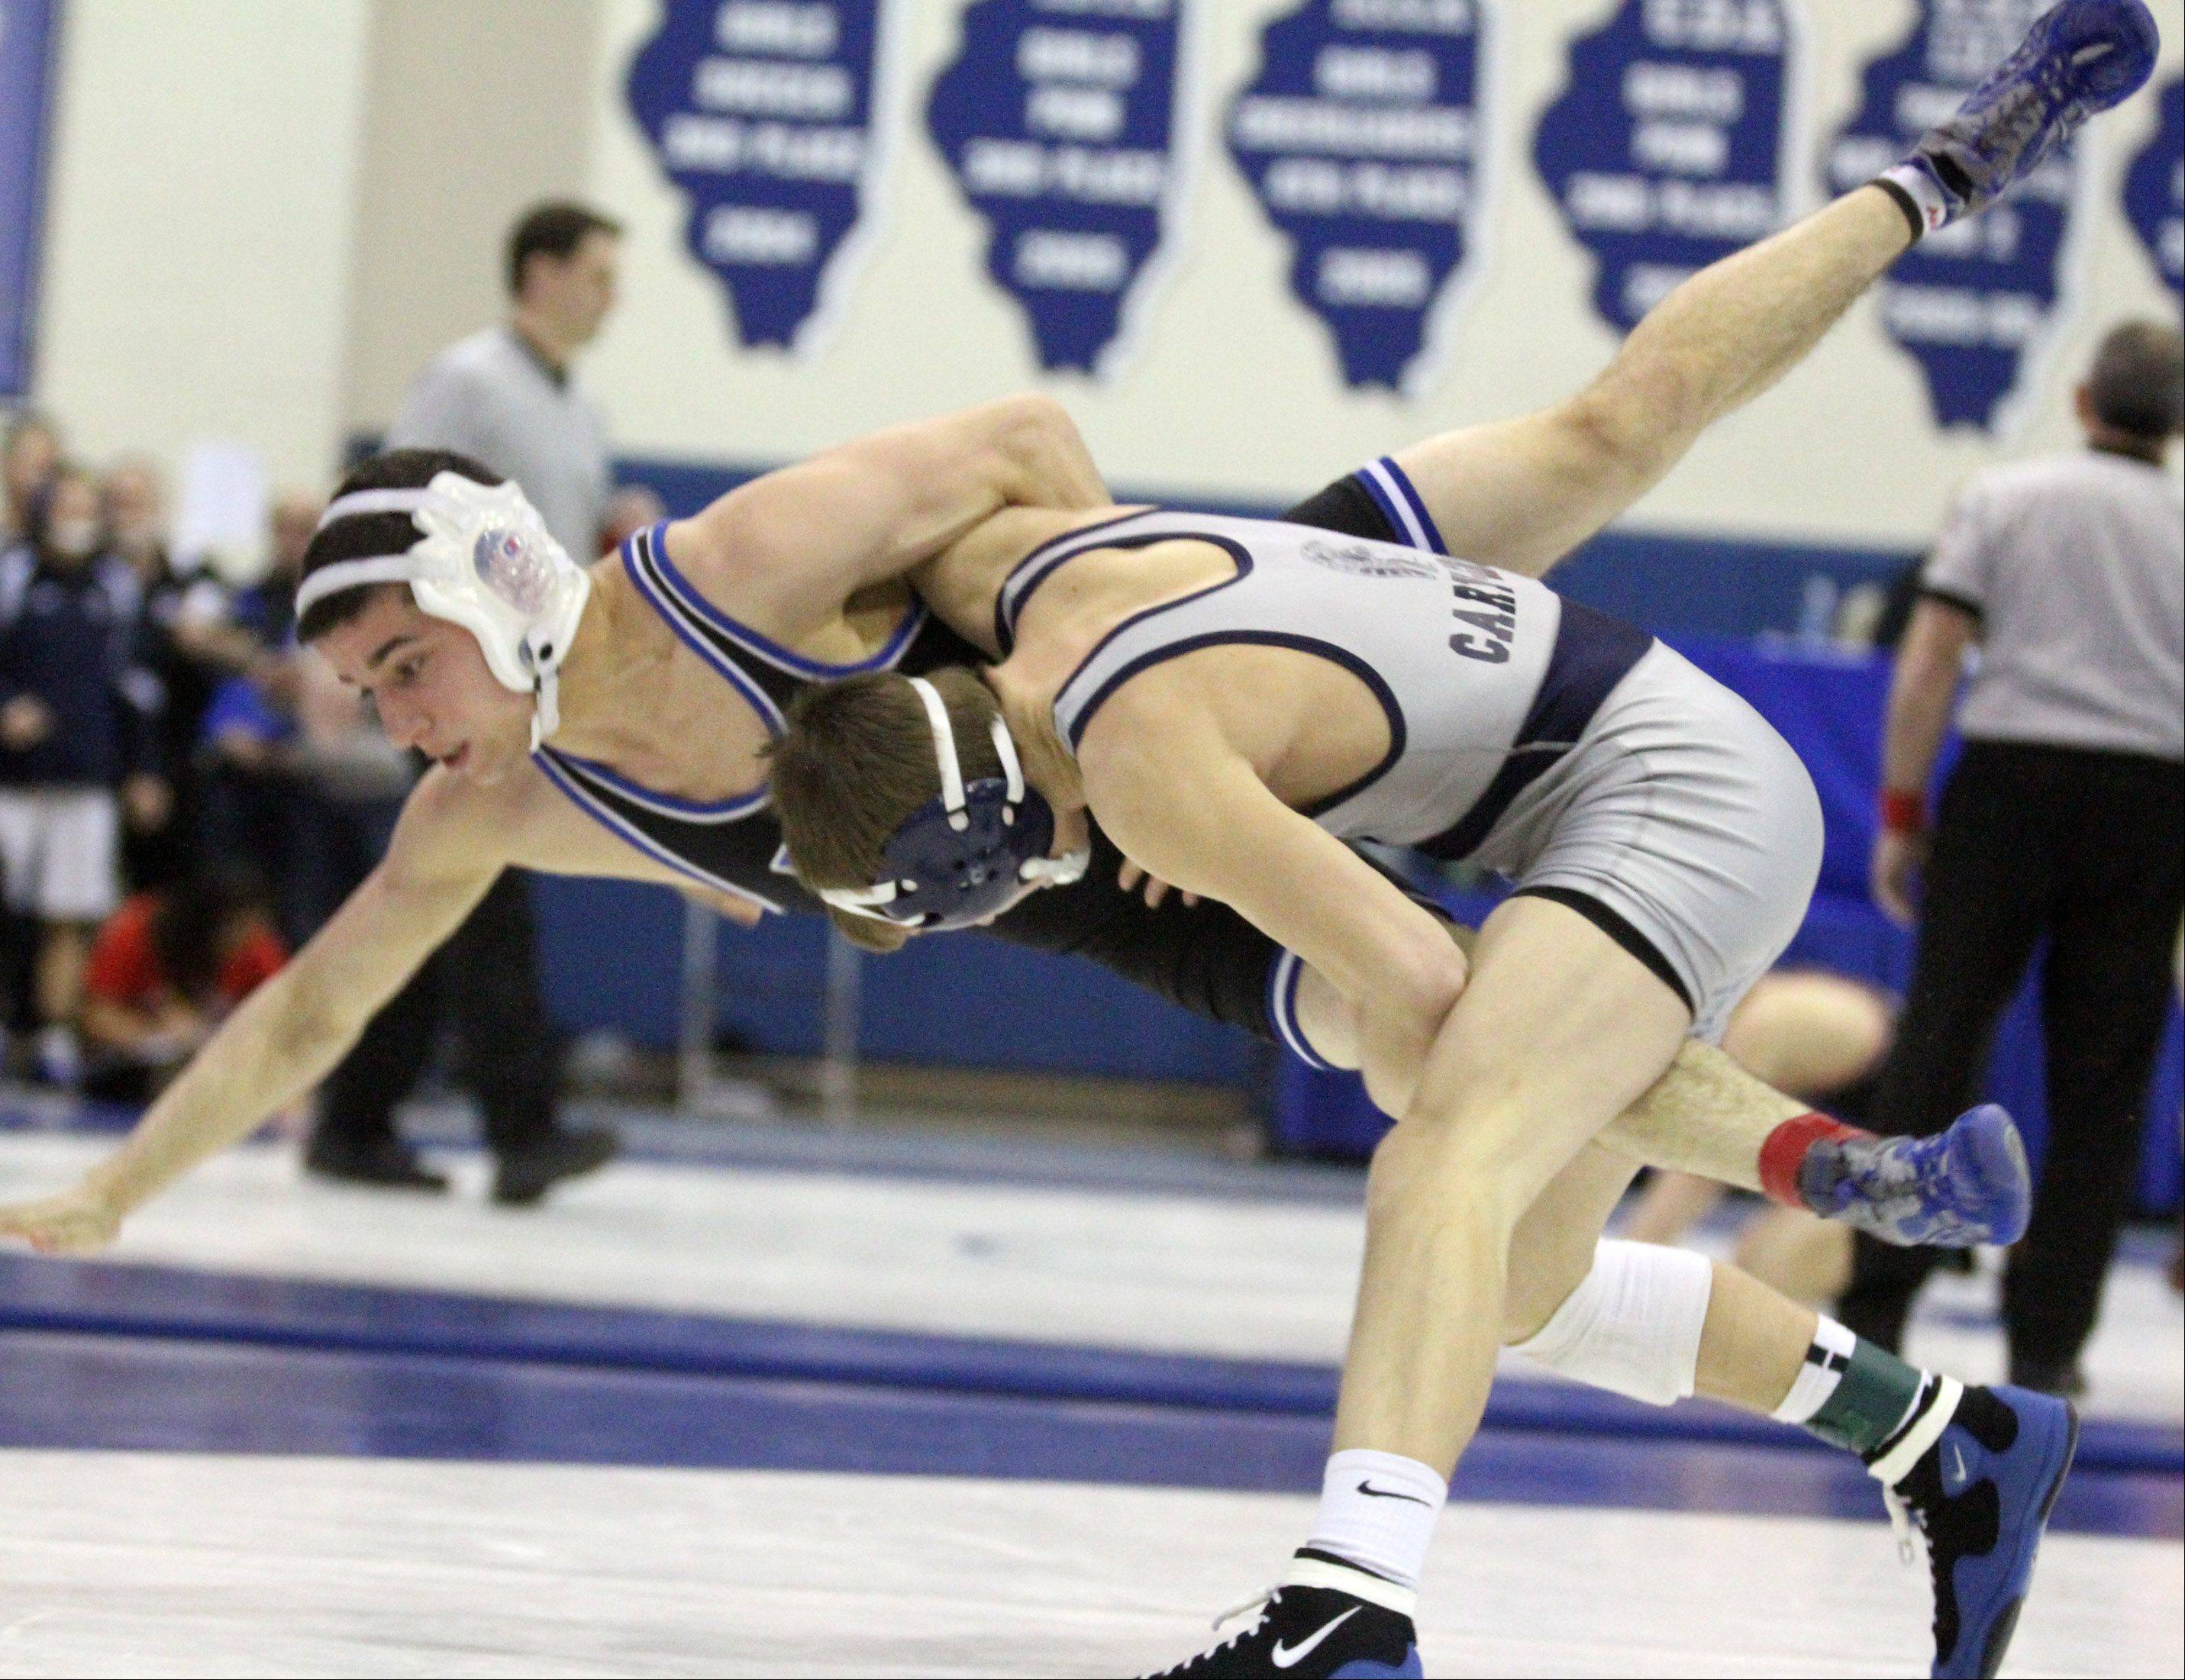 George LeClaire/gleclaire@dailyherald.com Cary-Grove's Michael Cullen, right, wins his 113-pound championship match against Highland Park's Nate Kessler at the Class 3A individual wrestling regional at Lake Zurich on Saturday, February 2, 2013.